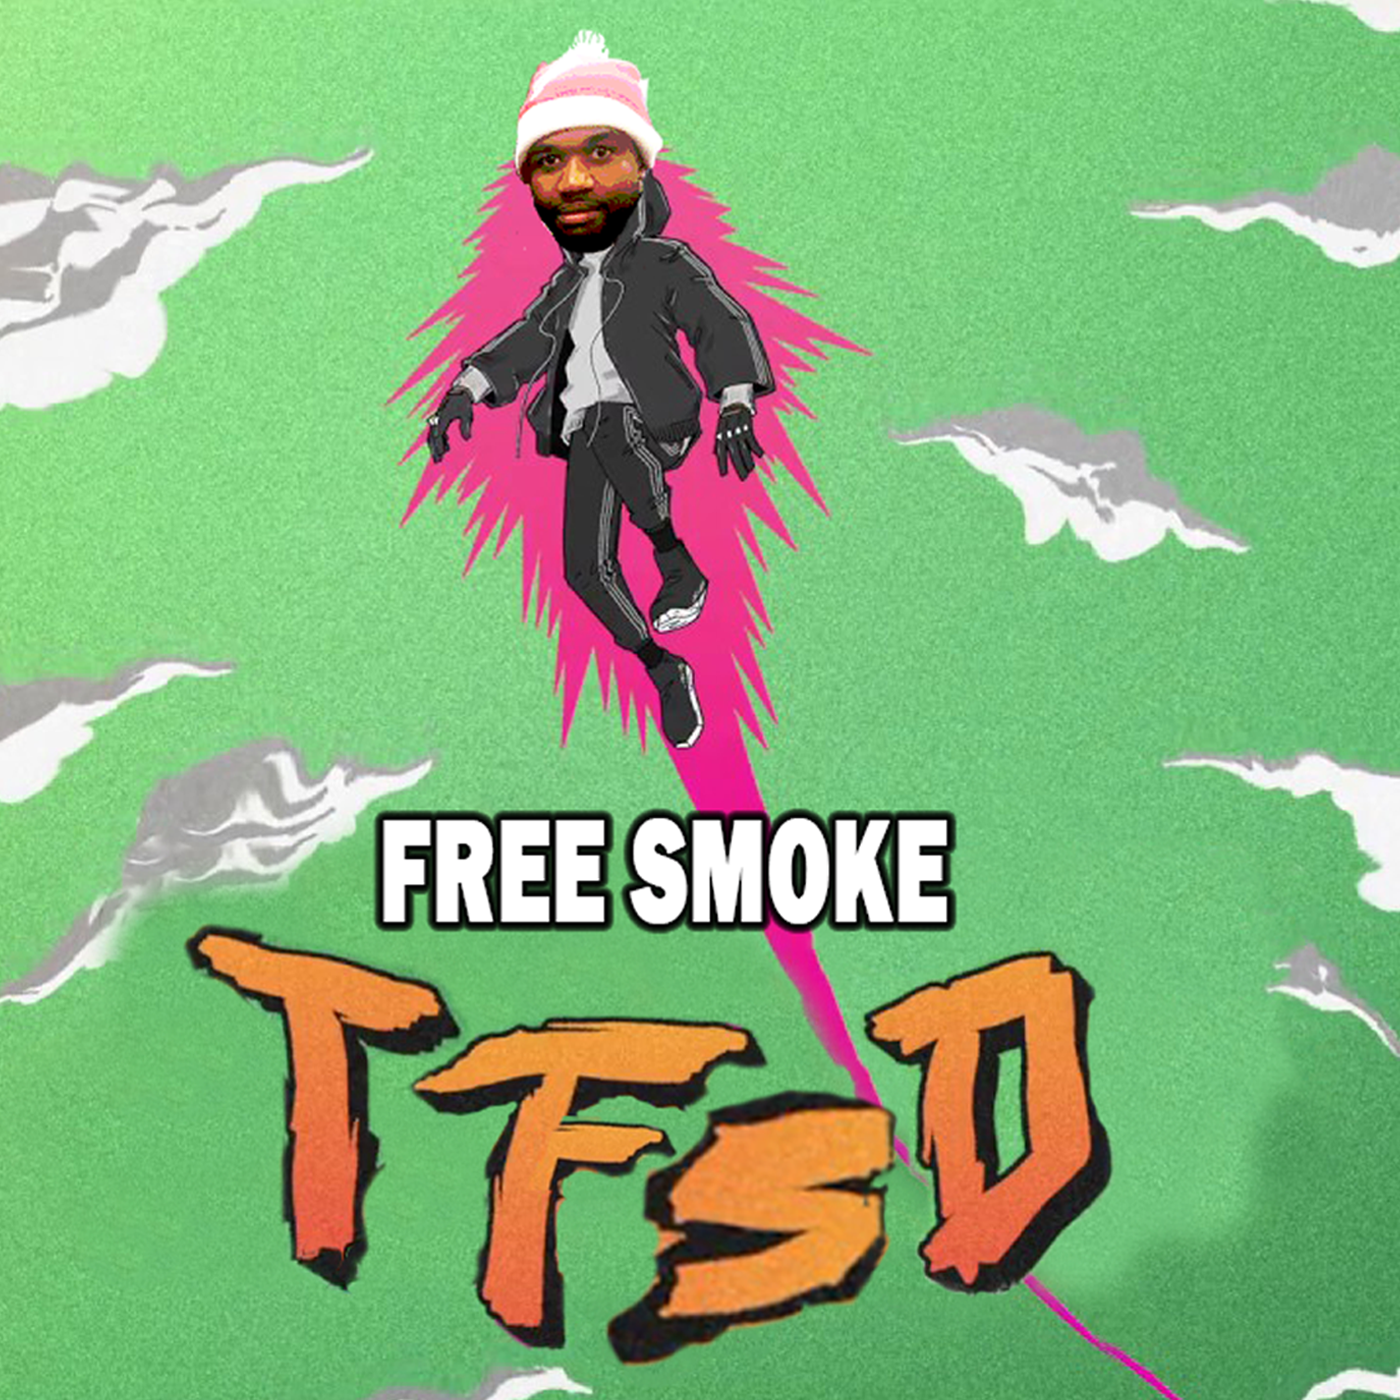 The Free Smoke Dixon PodCast